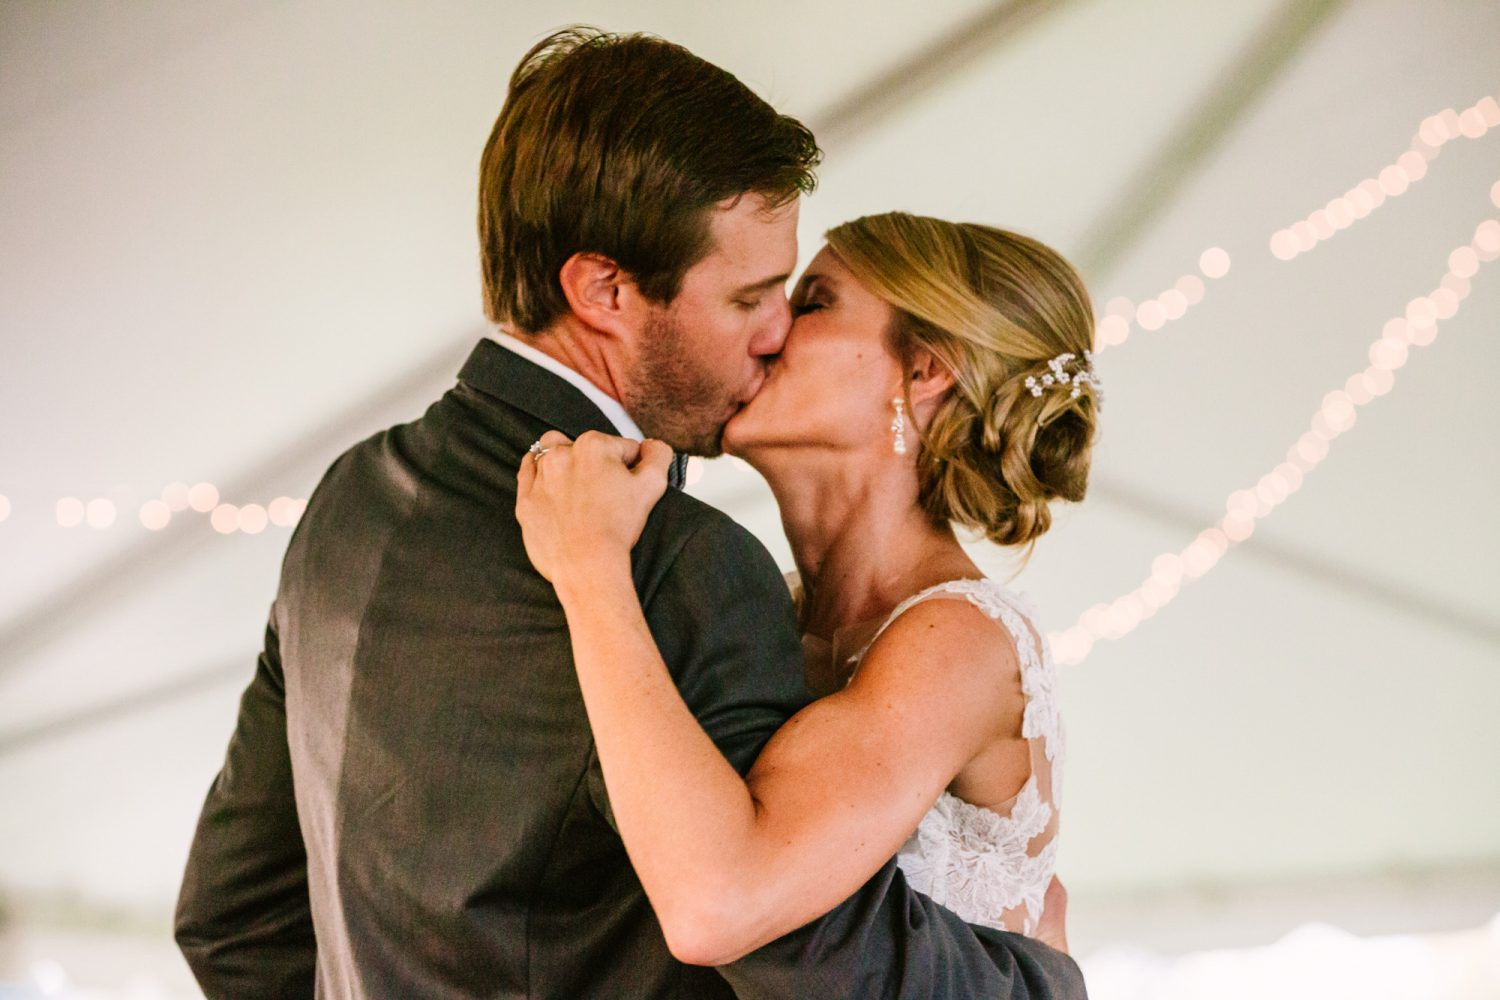 Waynesville, NC Wedding Photography | Bride and Groom Kissing Cafe Lights in Background